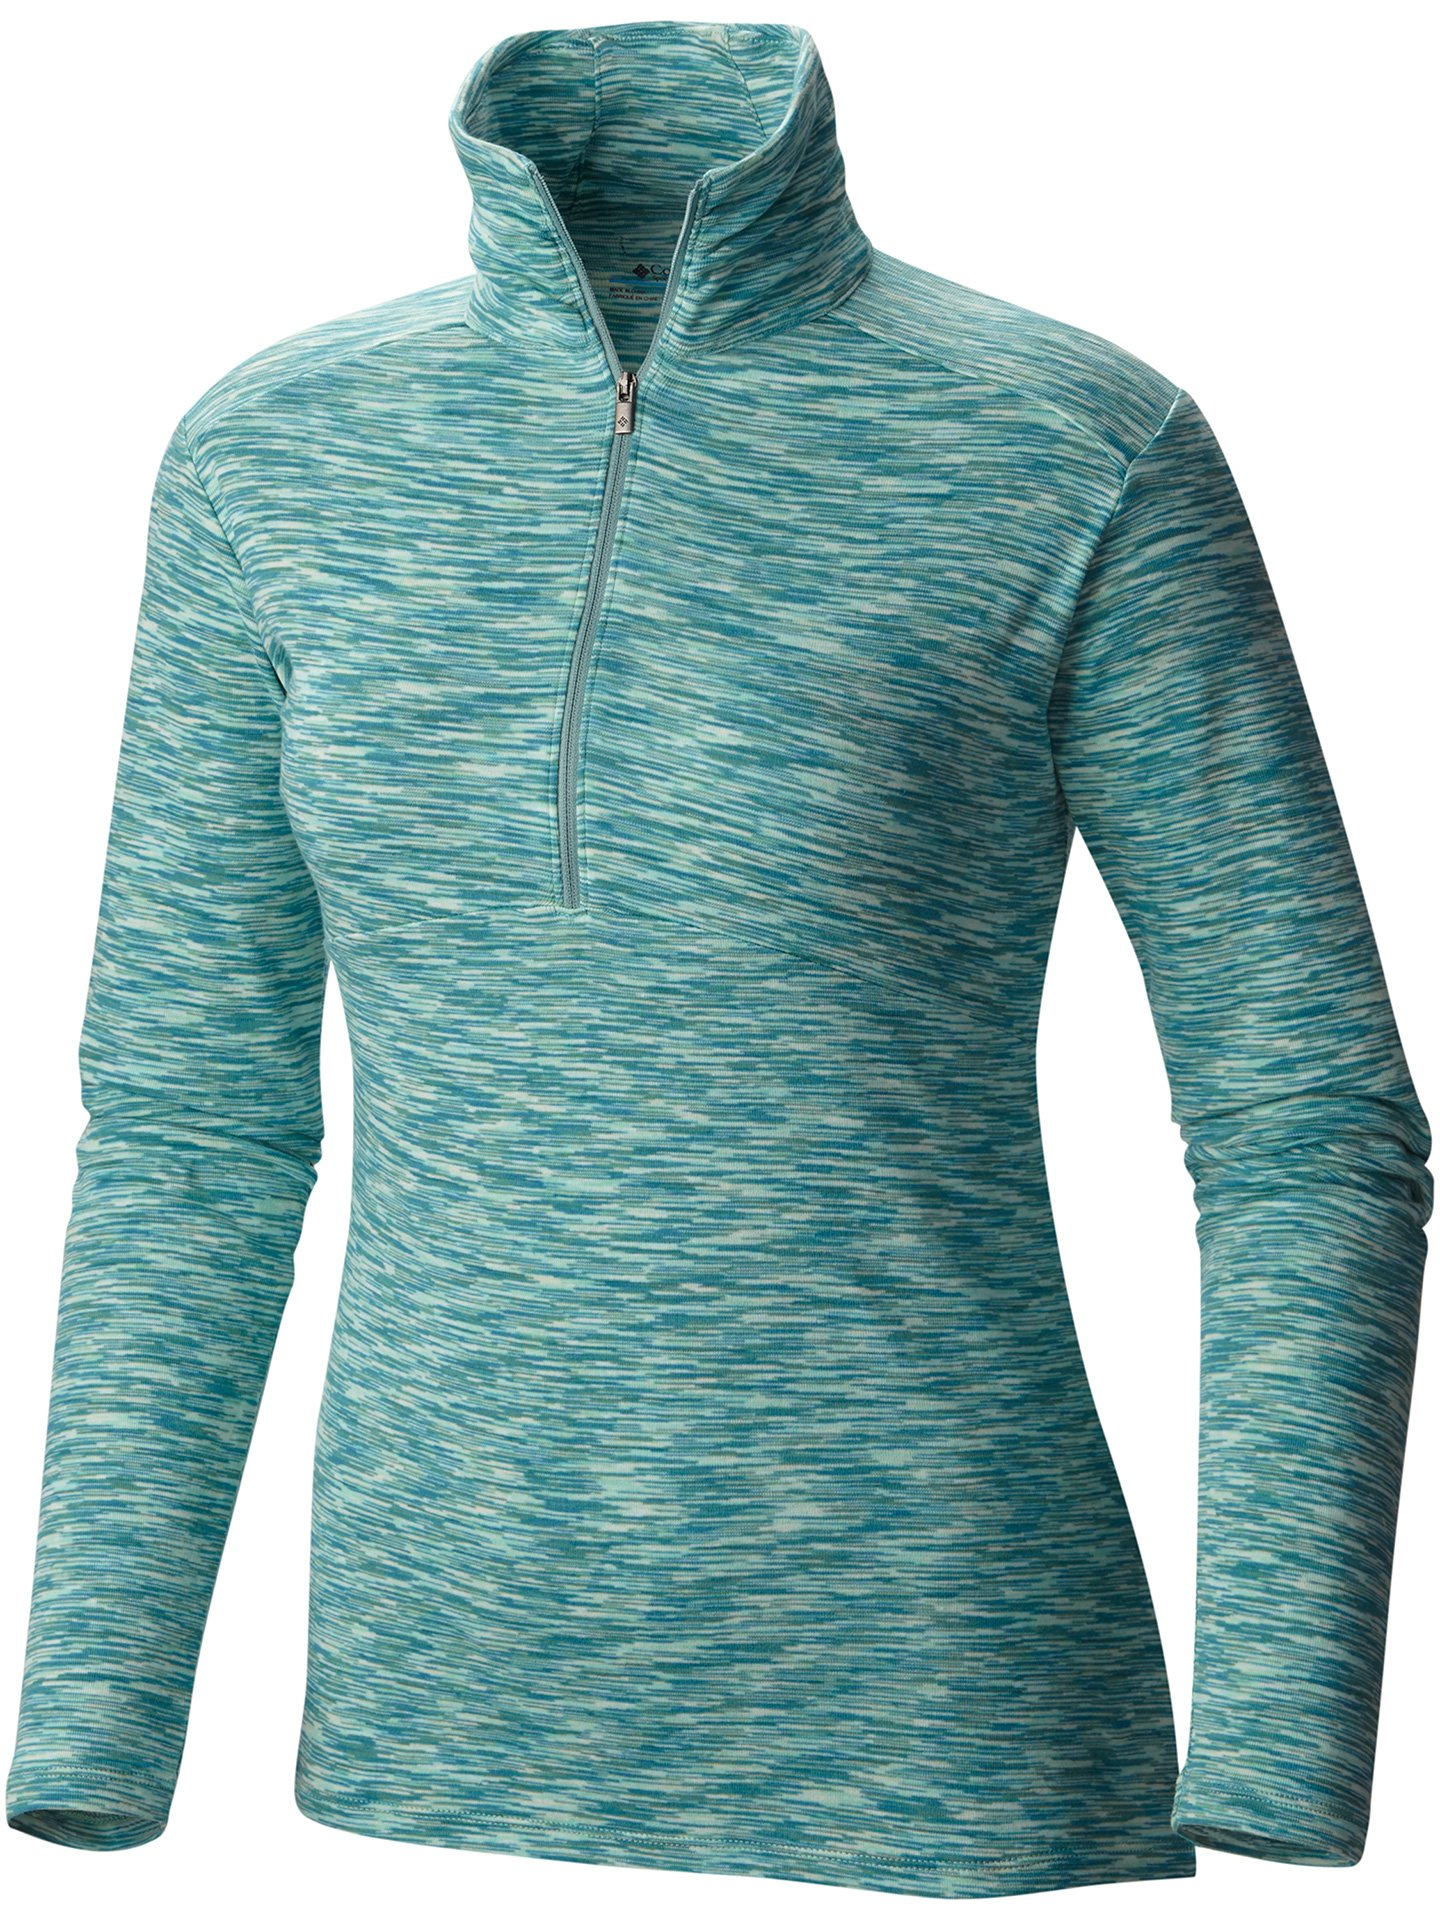 Columbia Women's Outer Spaced Half Zip, Dusty Green, Large by Columbia (Image #1)